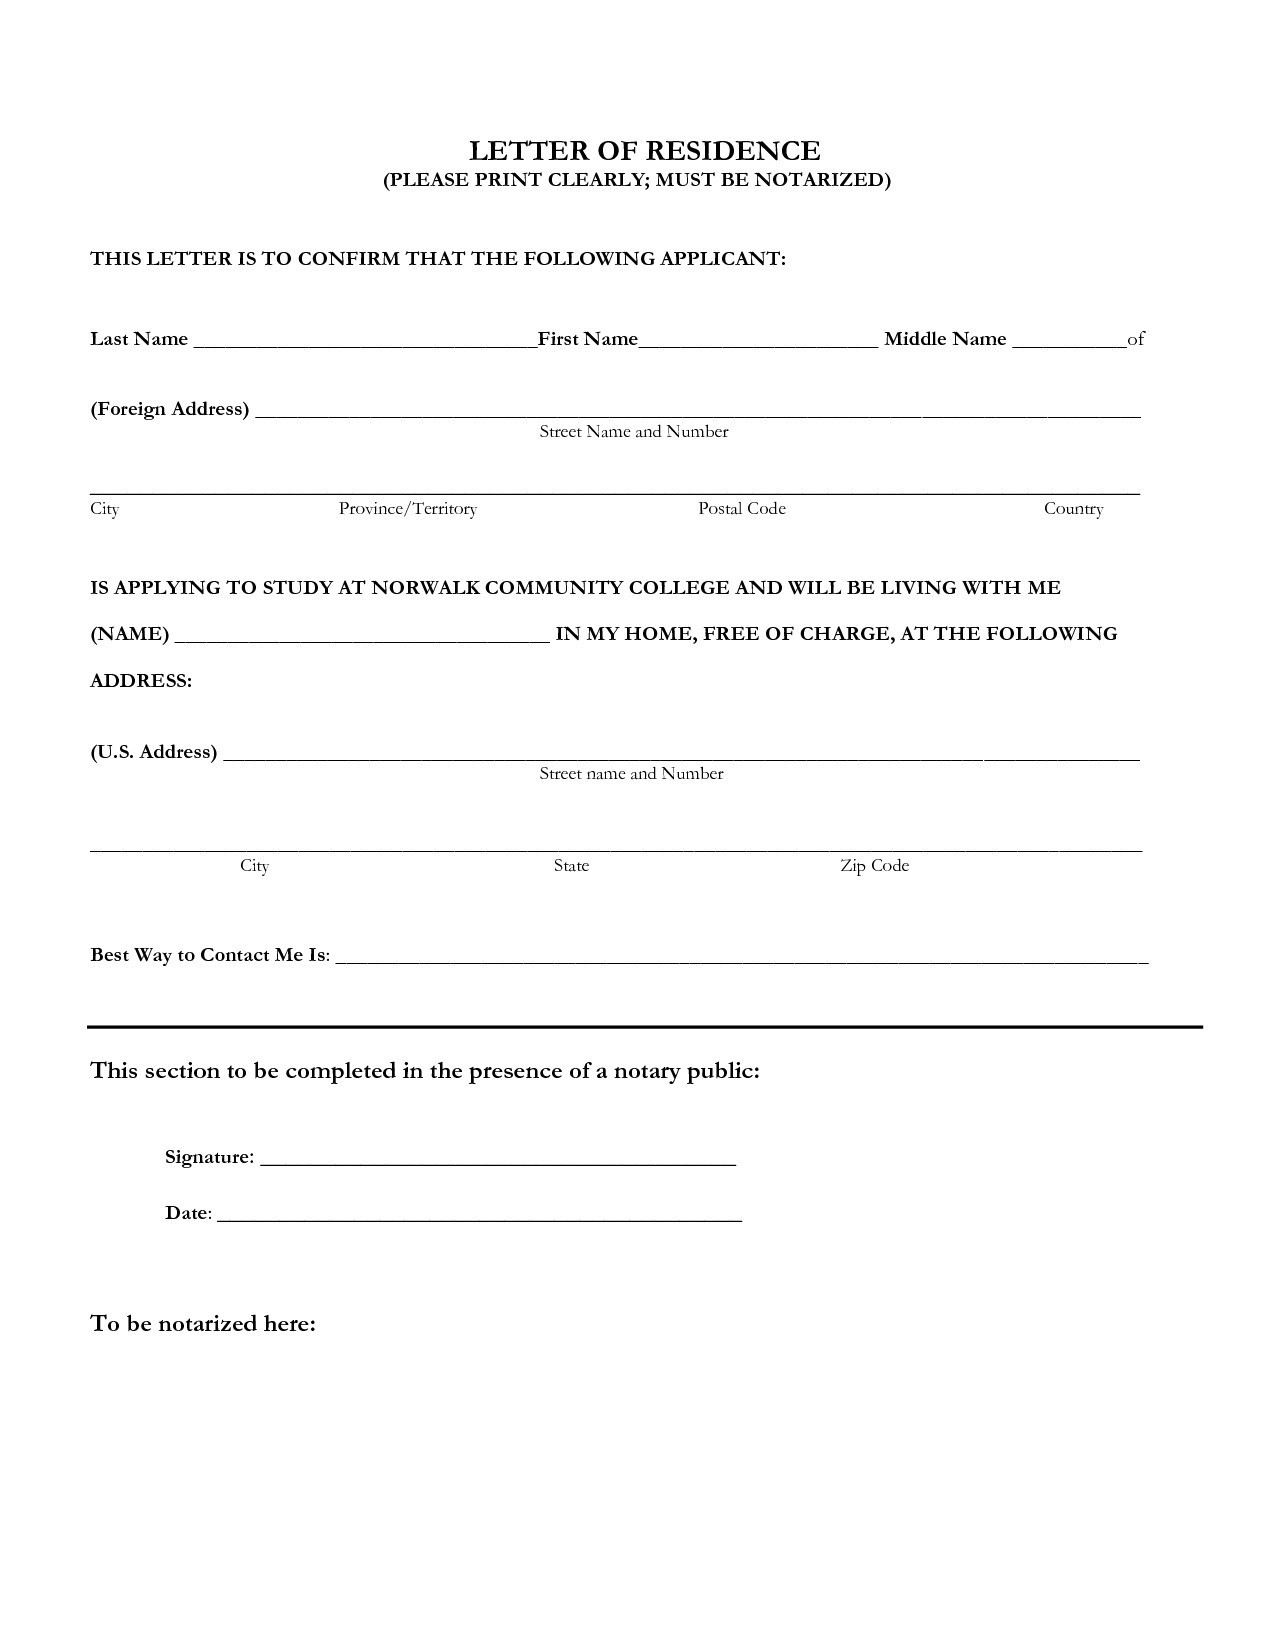 Proof Of Residency Letter Notarized Template - Notarized Certificate Employment Sample New Example Notarized